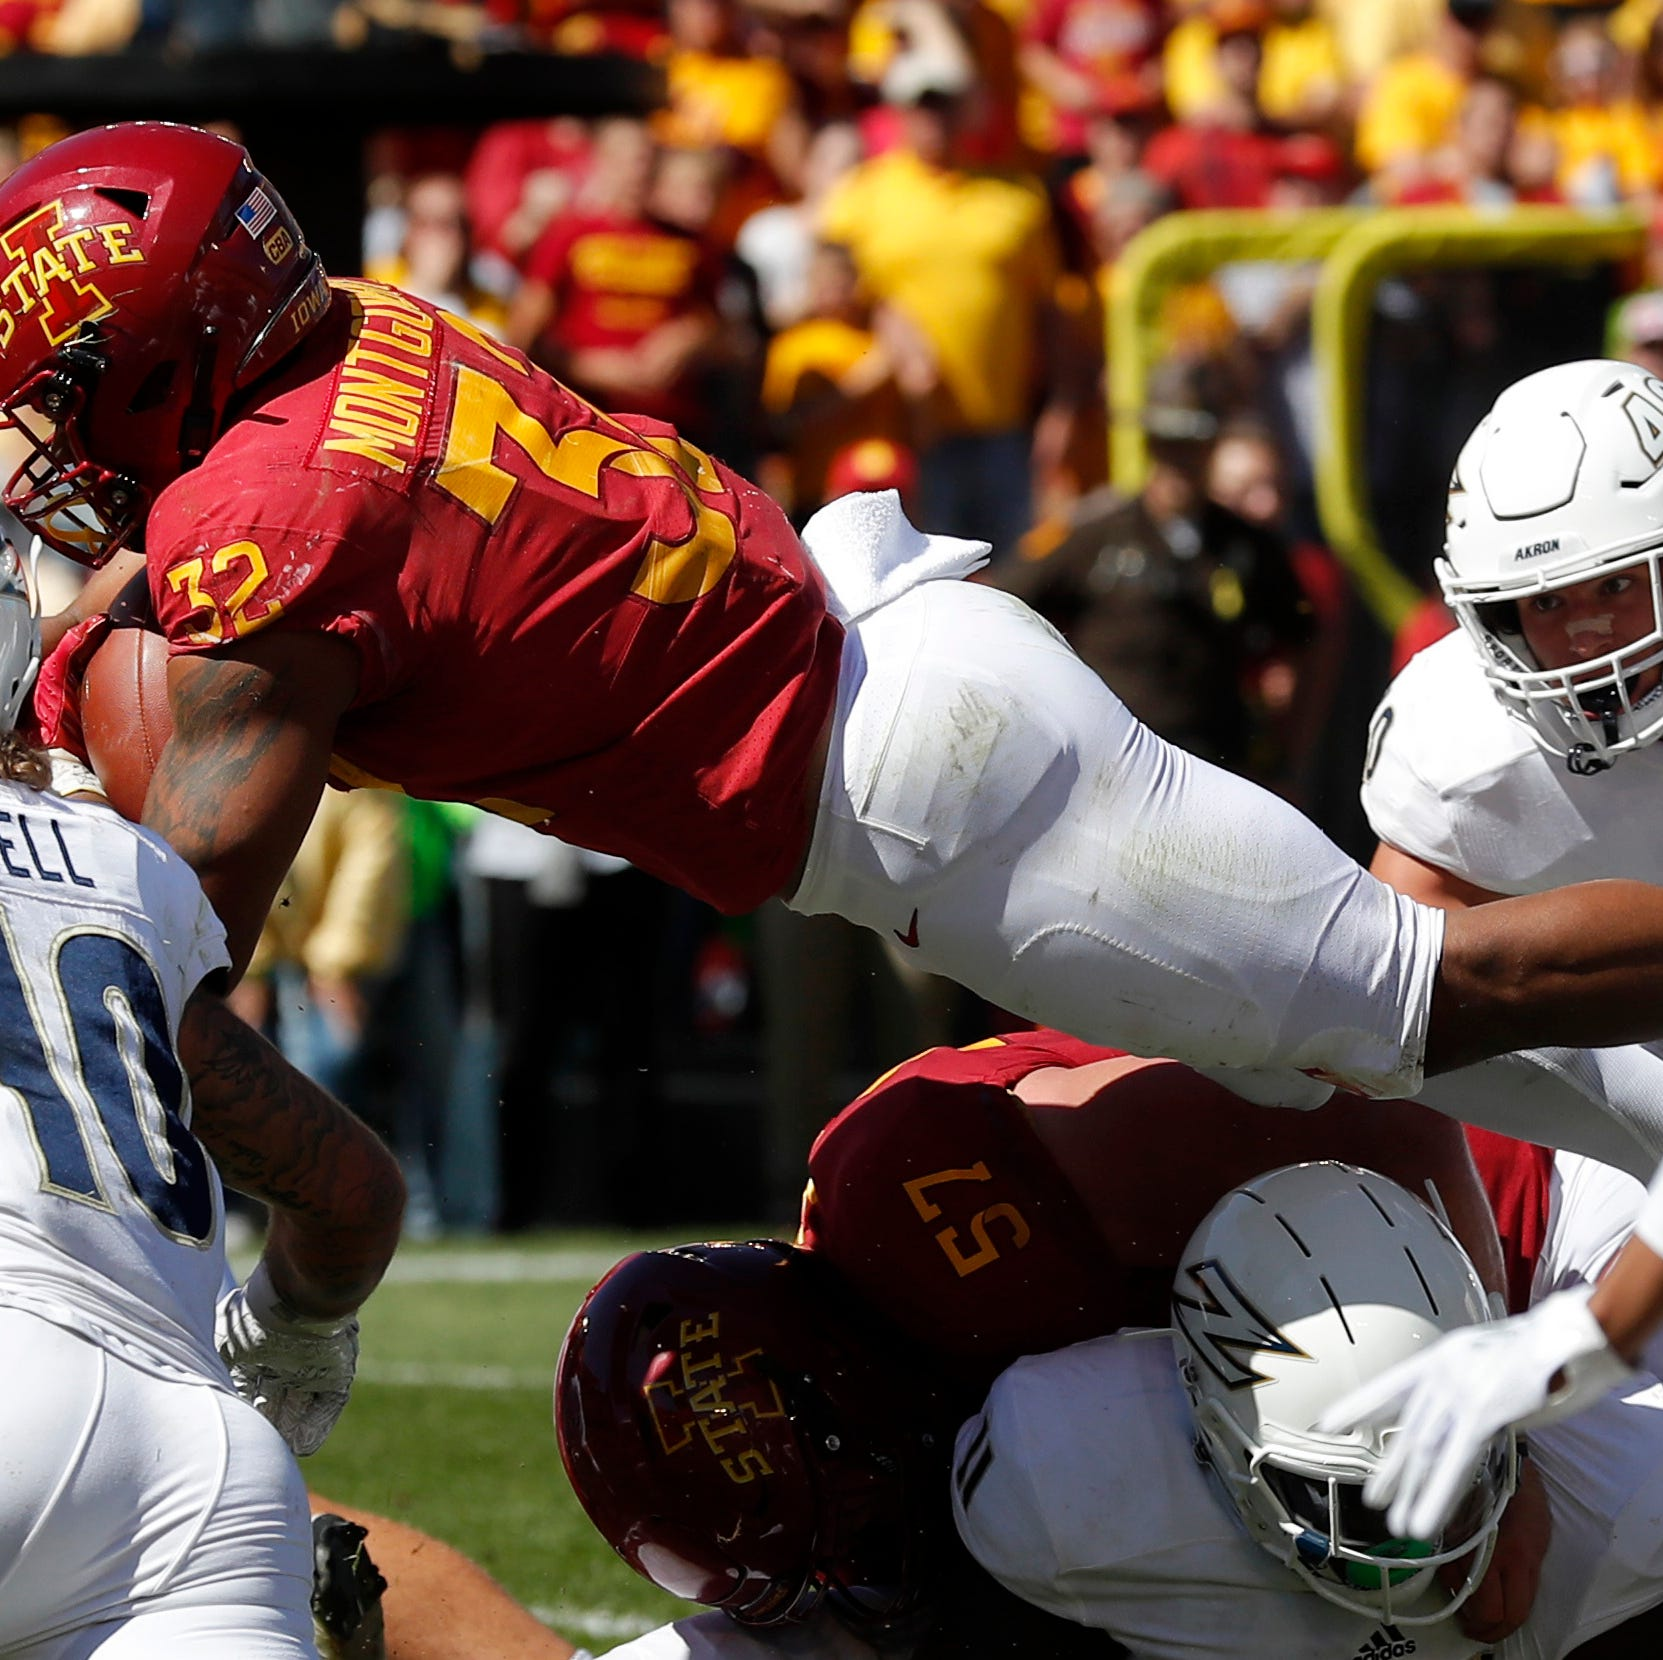 Iowa State coach Matt Campbell encouraged by offensive progression